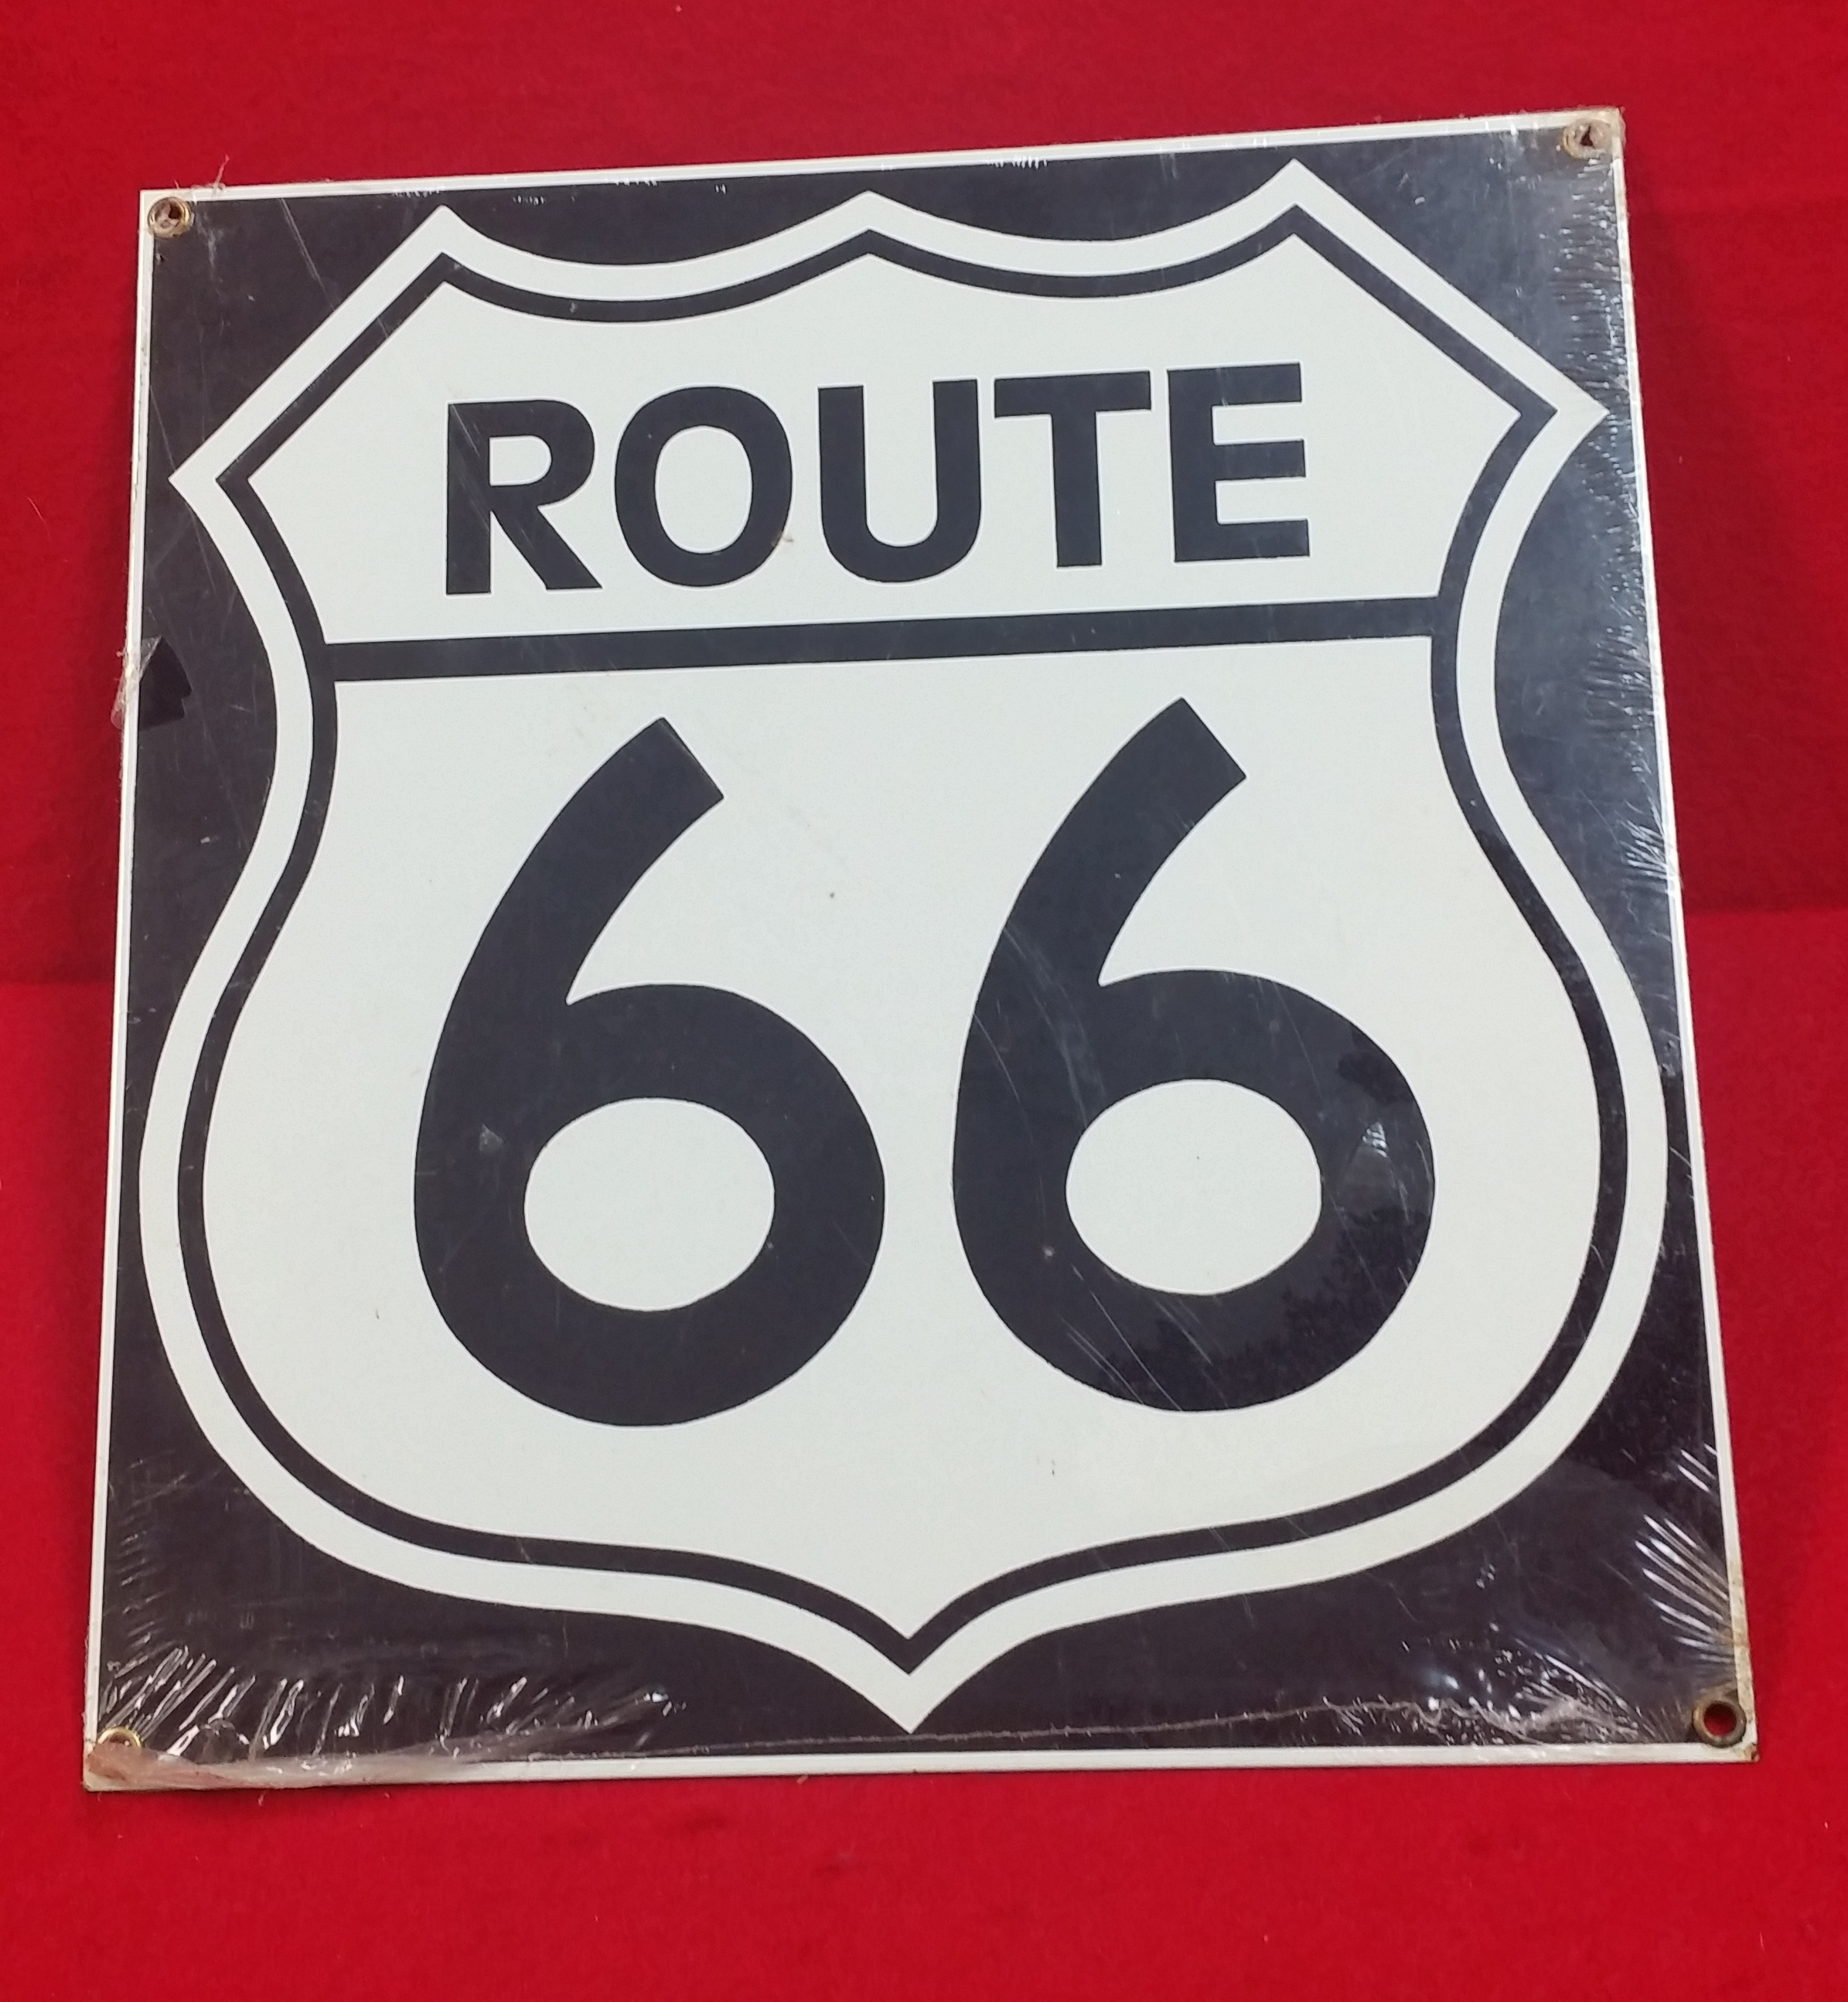 VINTAGE STYLE TIN SIGN - ROUTE 66 - SIGN COLLECTIBLES